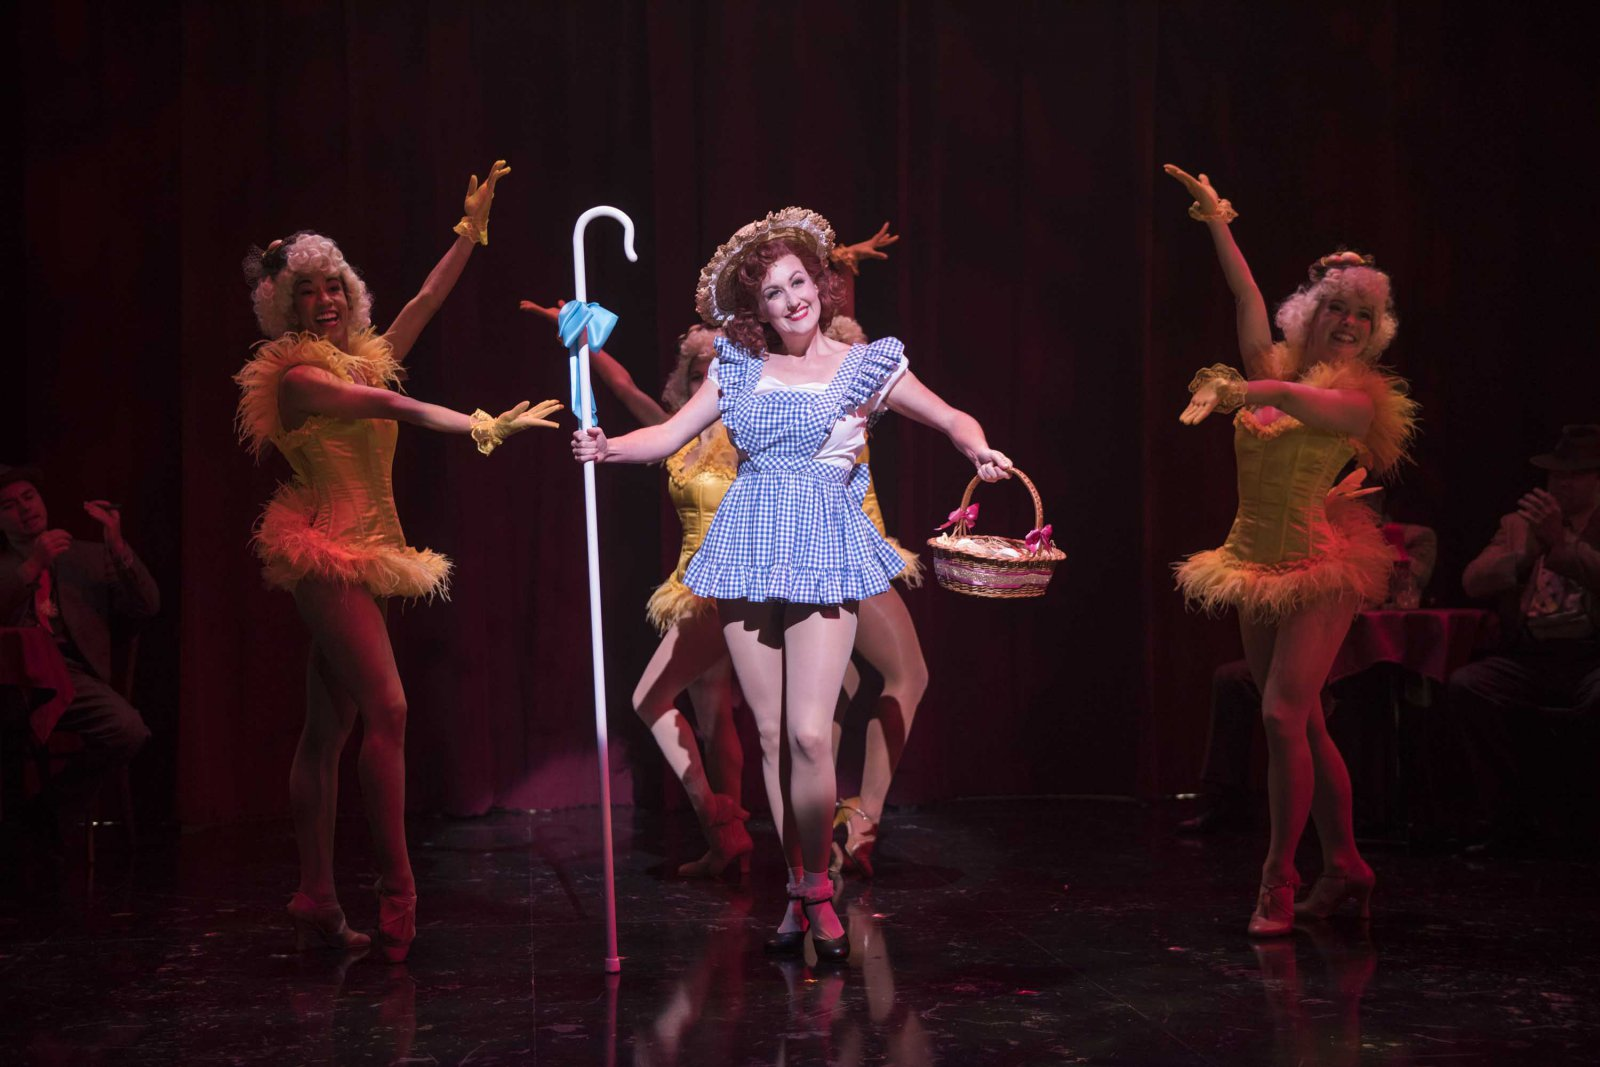 Milwaukee Repertory Theater presents Guys and Dolls in the Quadracci Powerhouse from September 19 to October 29, 2017. Kelley Faulkner and cast